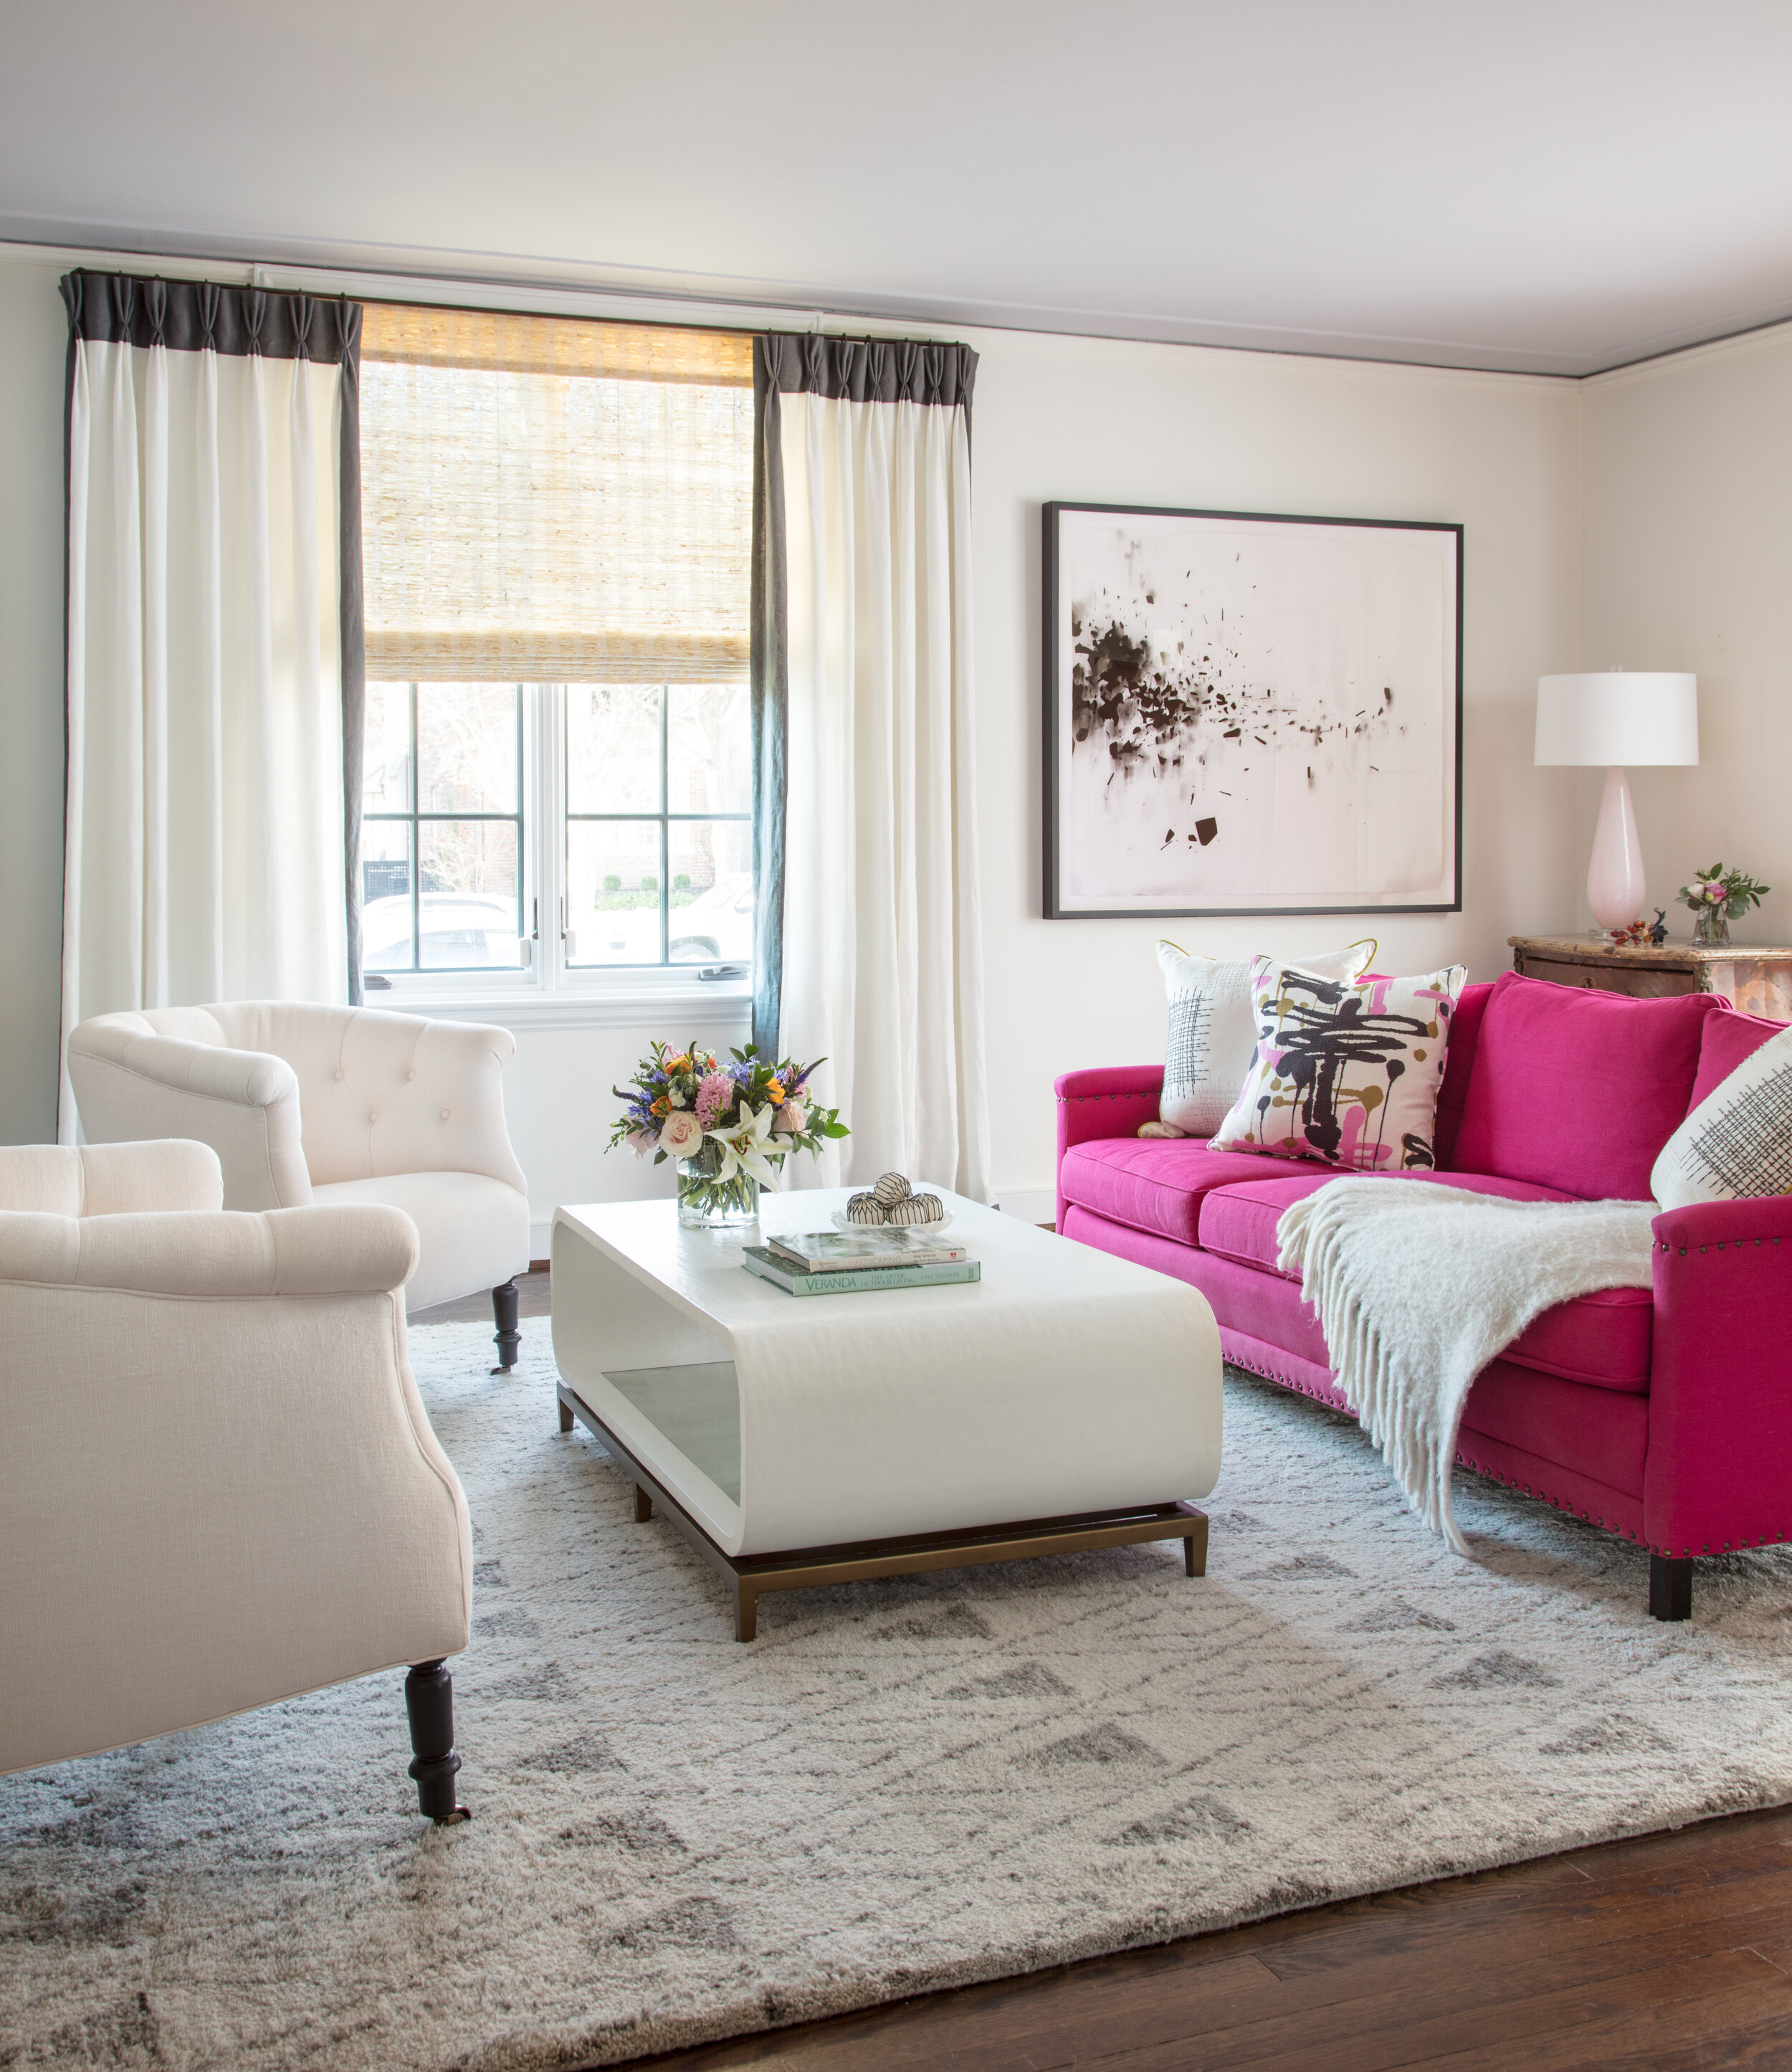 Marcia Fryer Landscape Designs | Fresh Interior Design | Pink Sofa.jpg